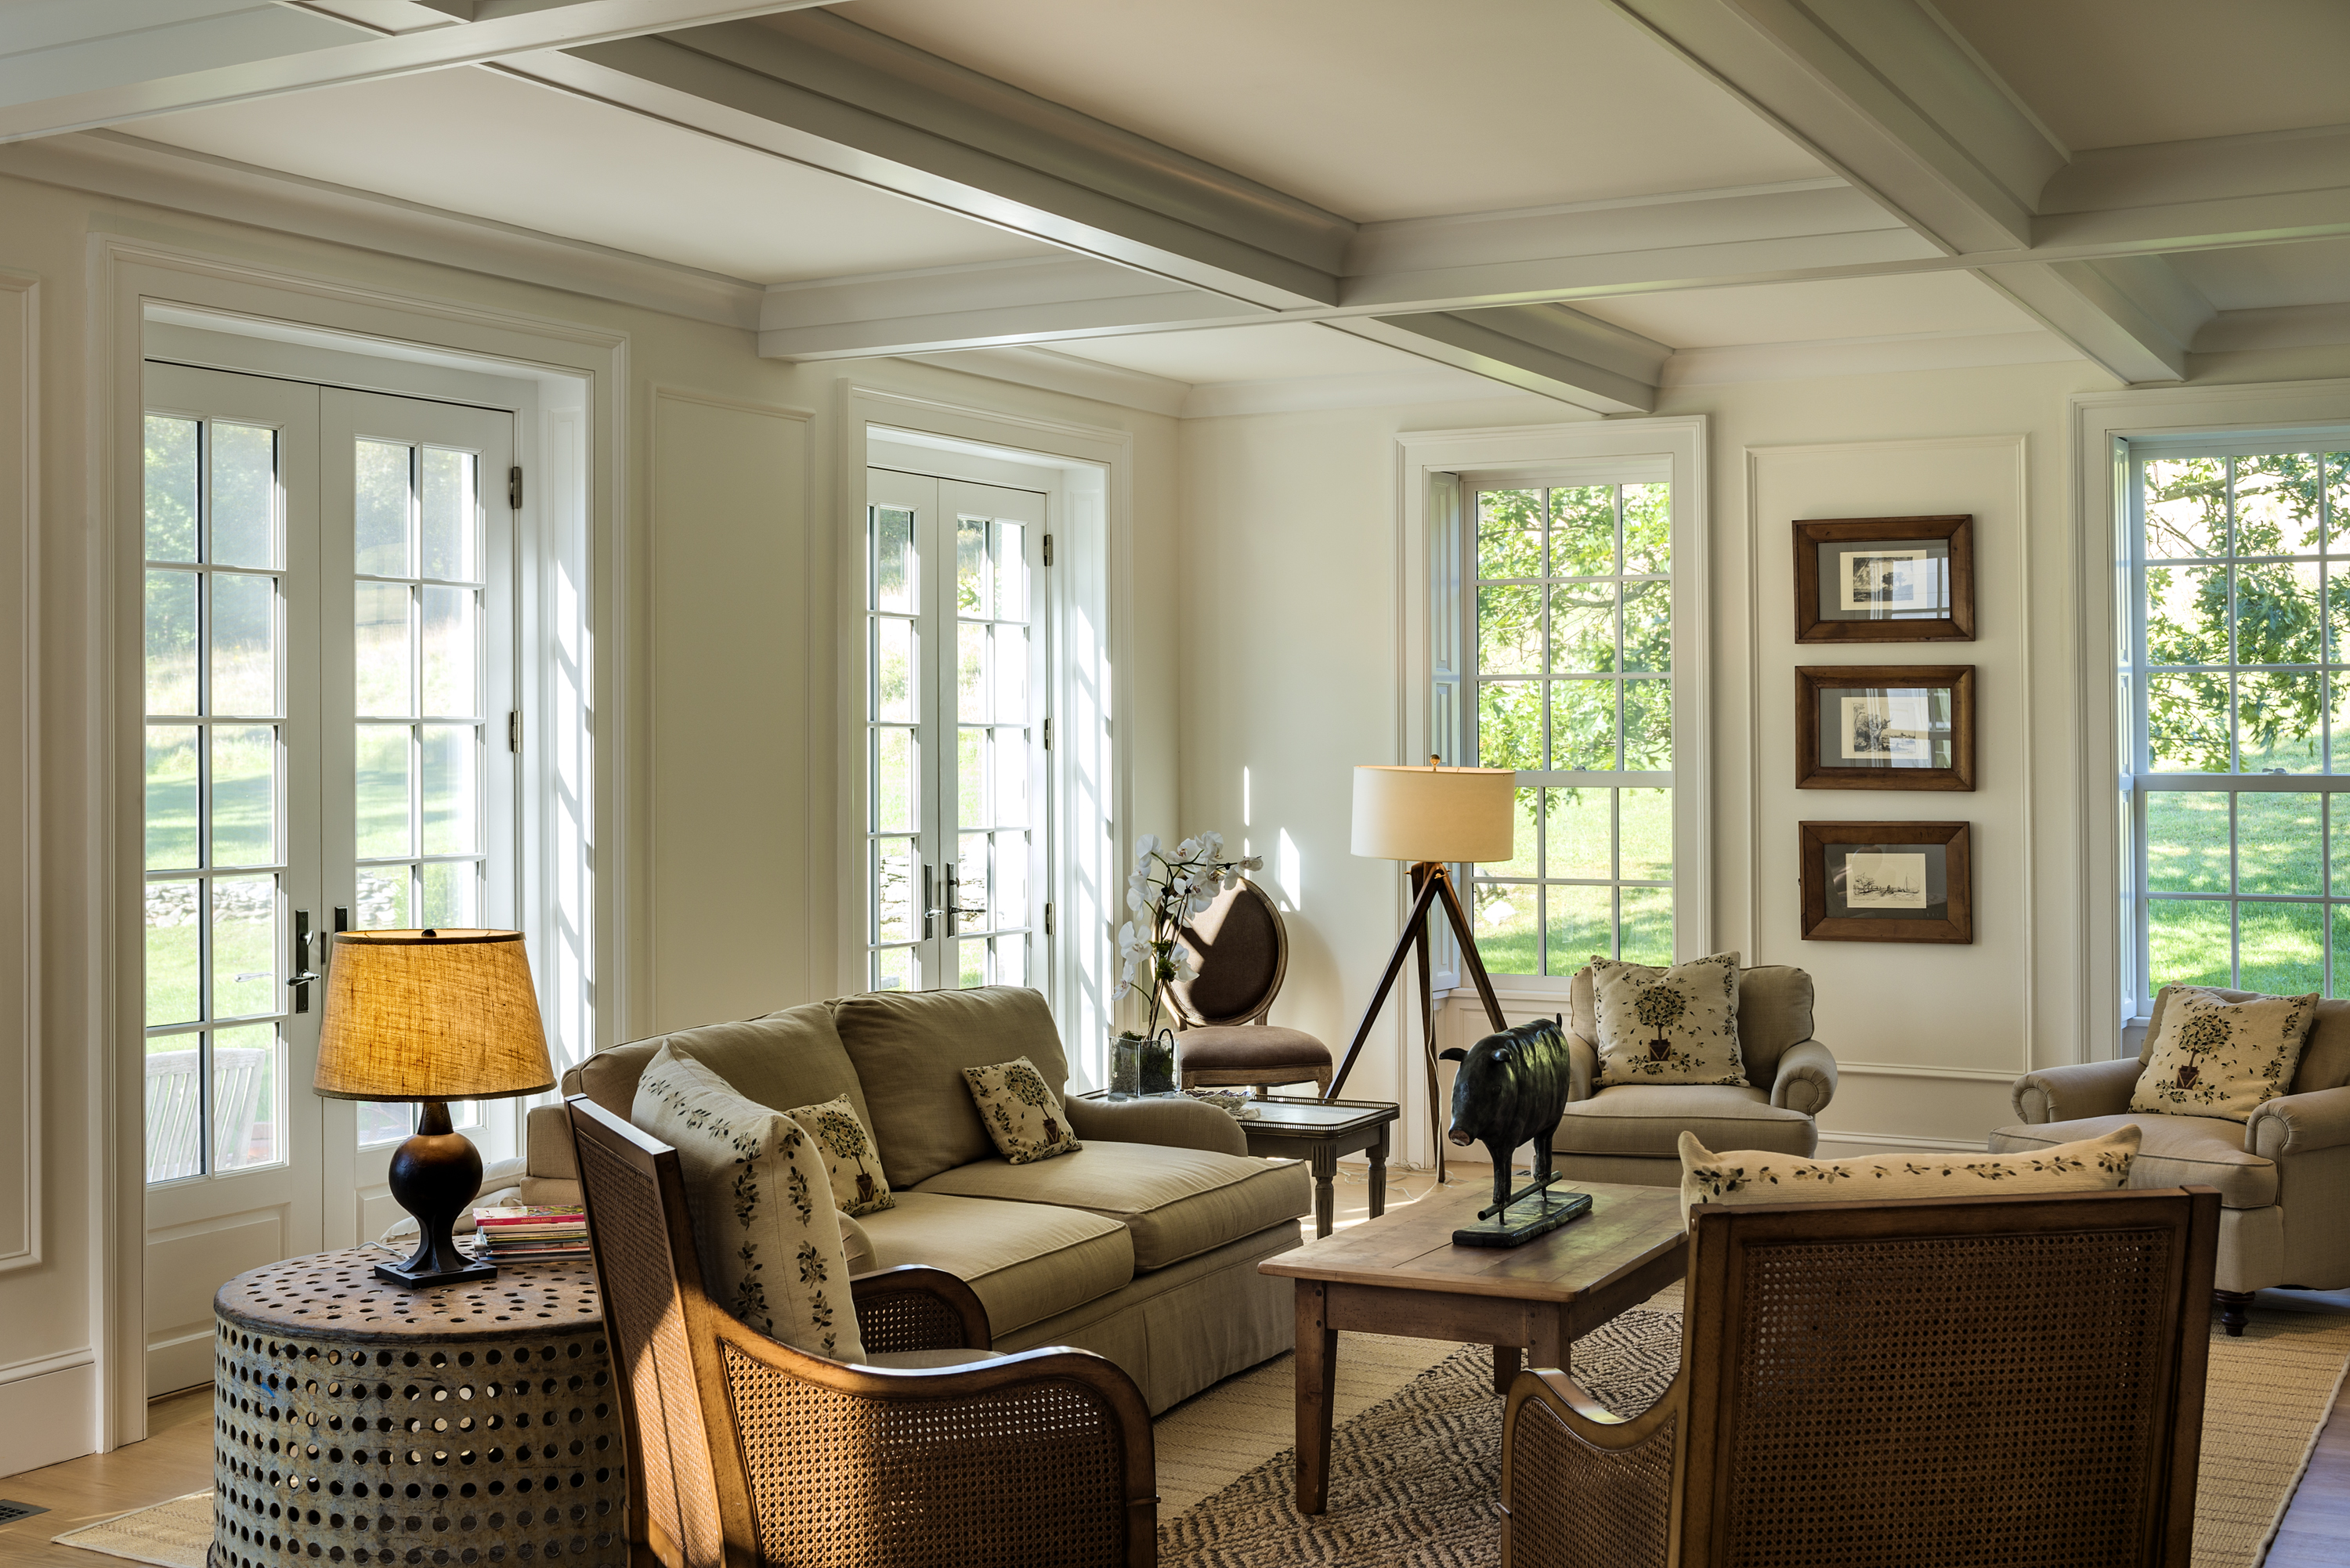 Living Room with Finished Beams